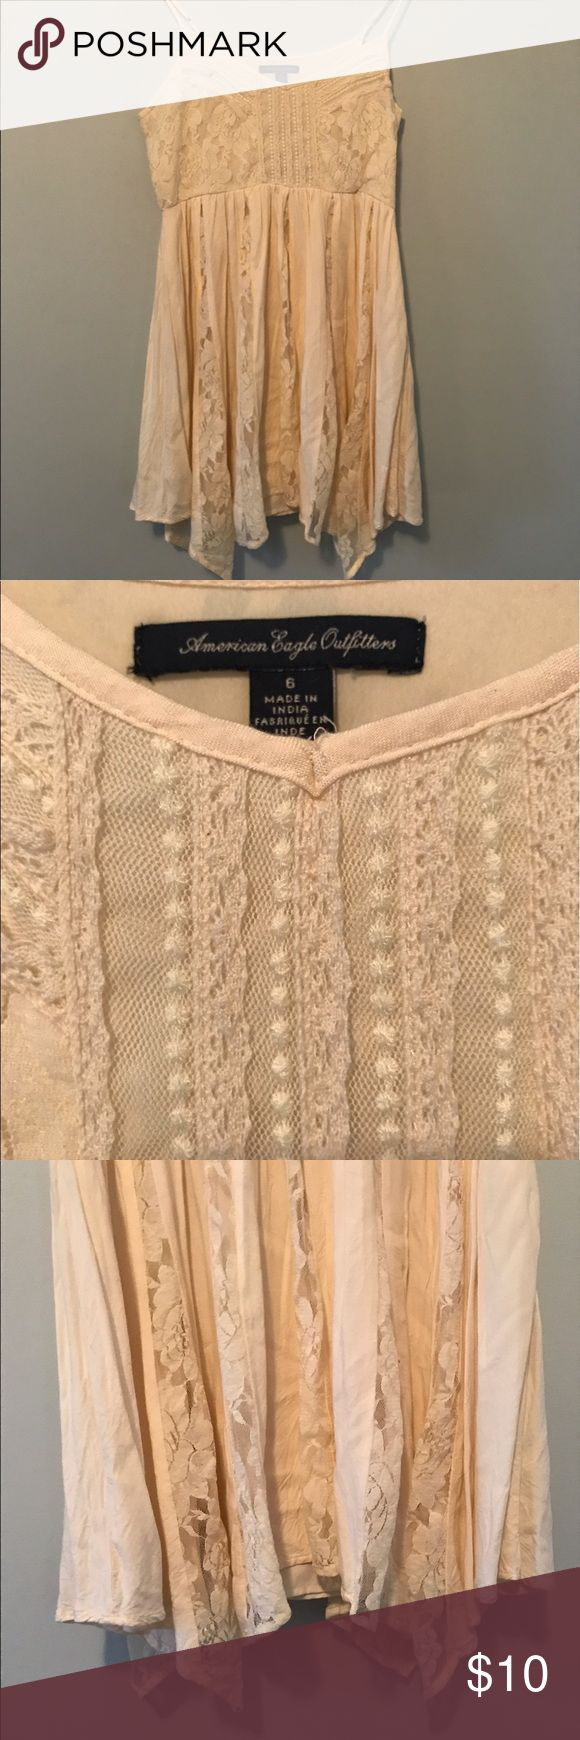 NEW LISTING***American Eagle Cream Lace Dress Lovely cream lace dress, fully lined, from American Eagle. Only worn a couple times but it does have two small stains and a small hole in part of the lace on front. All are minor and barely noticeable. You may be able to treat stains and remove all together. Perfect for all your summer concerts, festivals and fun! Approx. 14inch waist and 25 inches in length. Good condition! American Eagle Outfitters Dresses